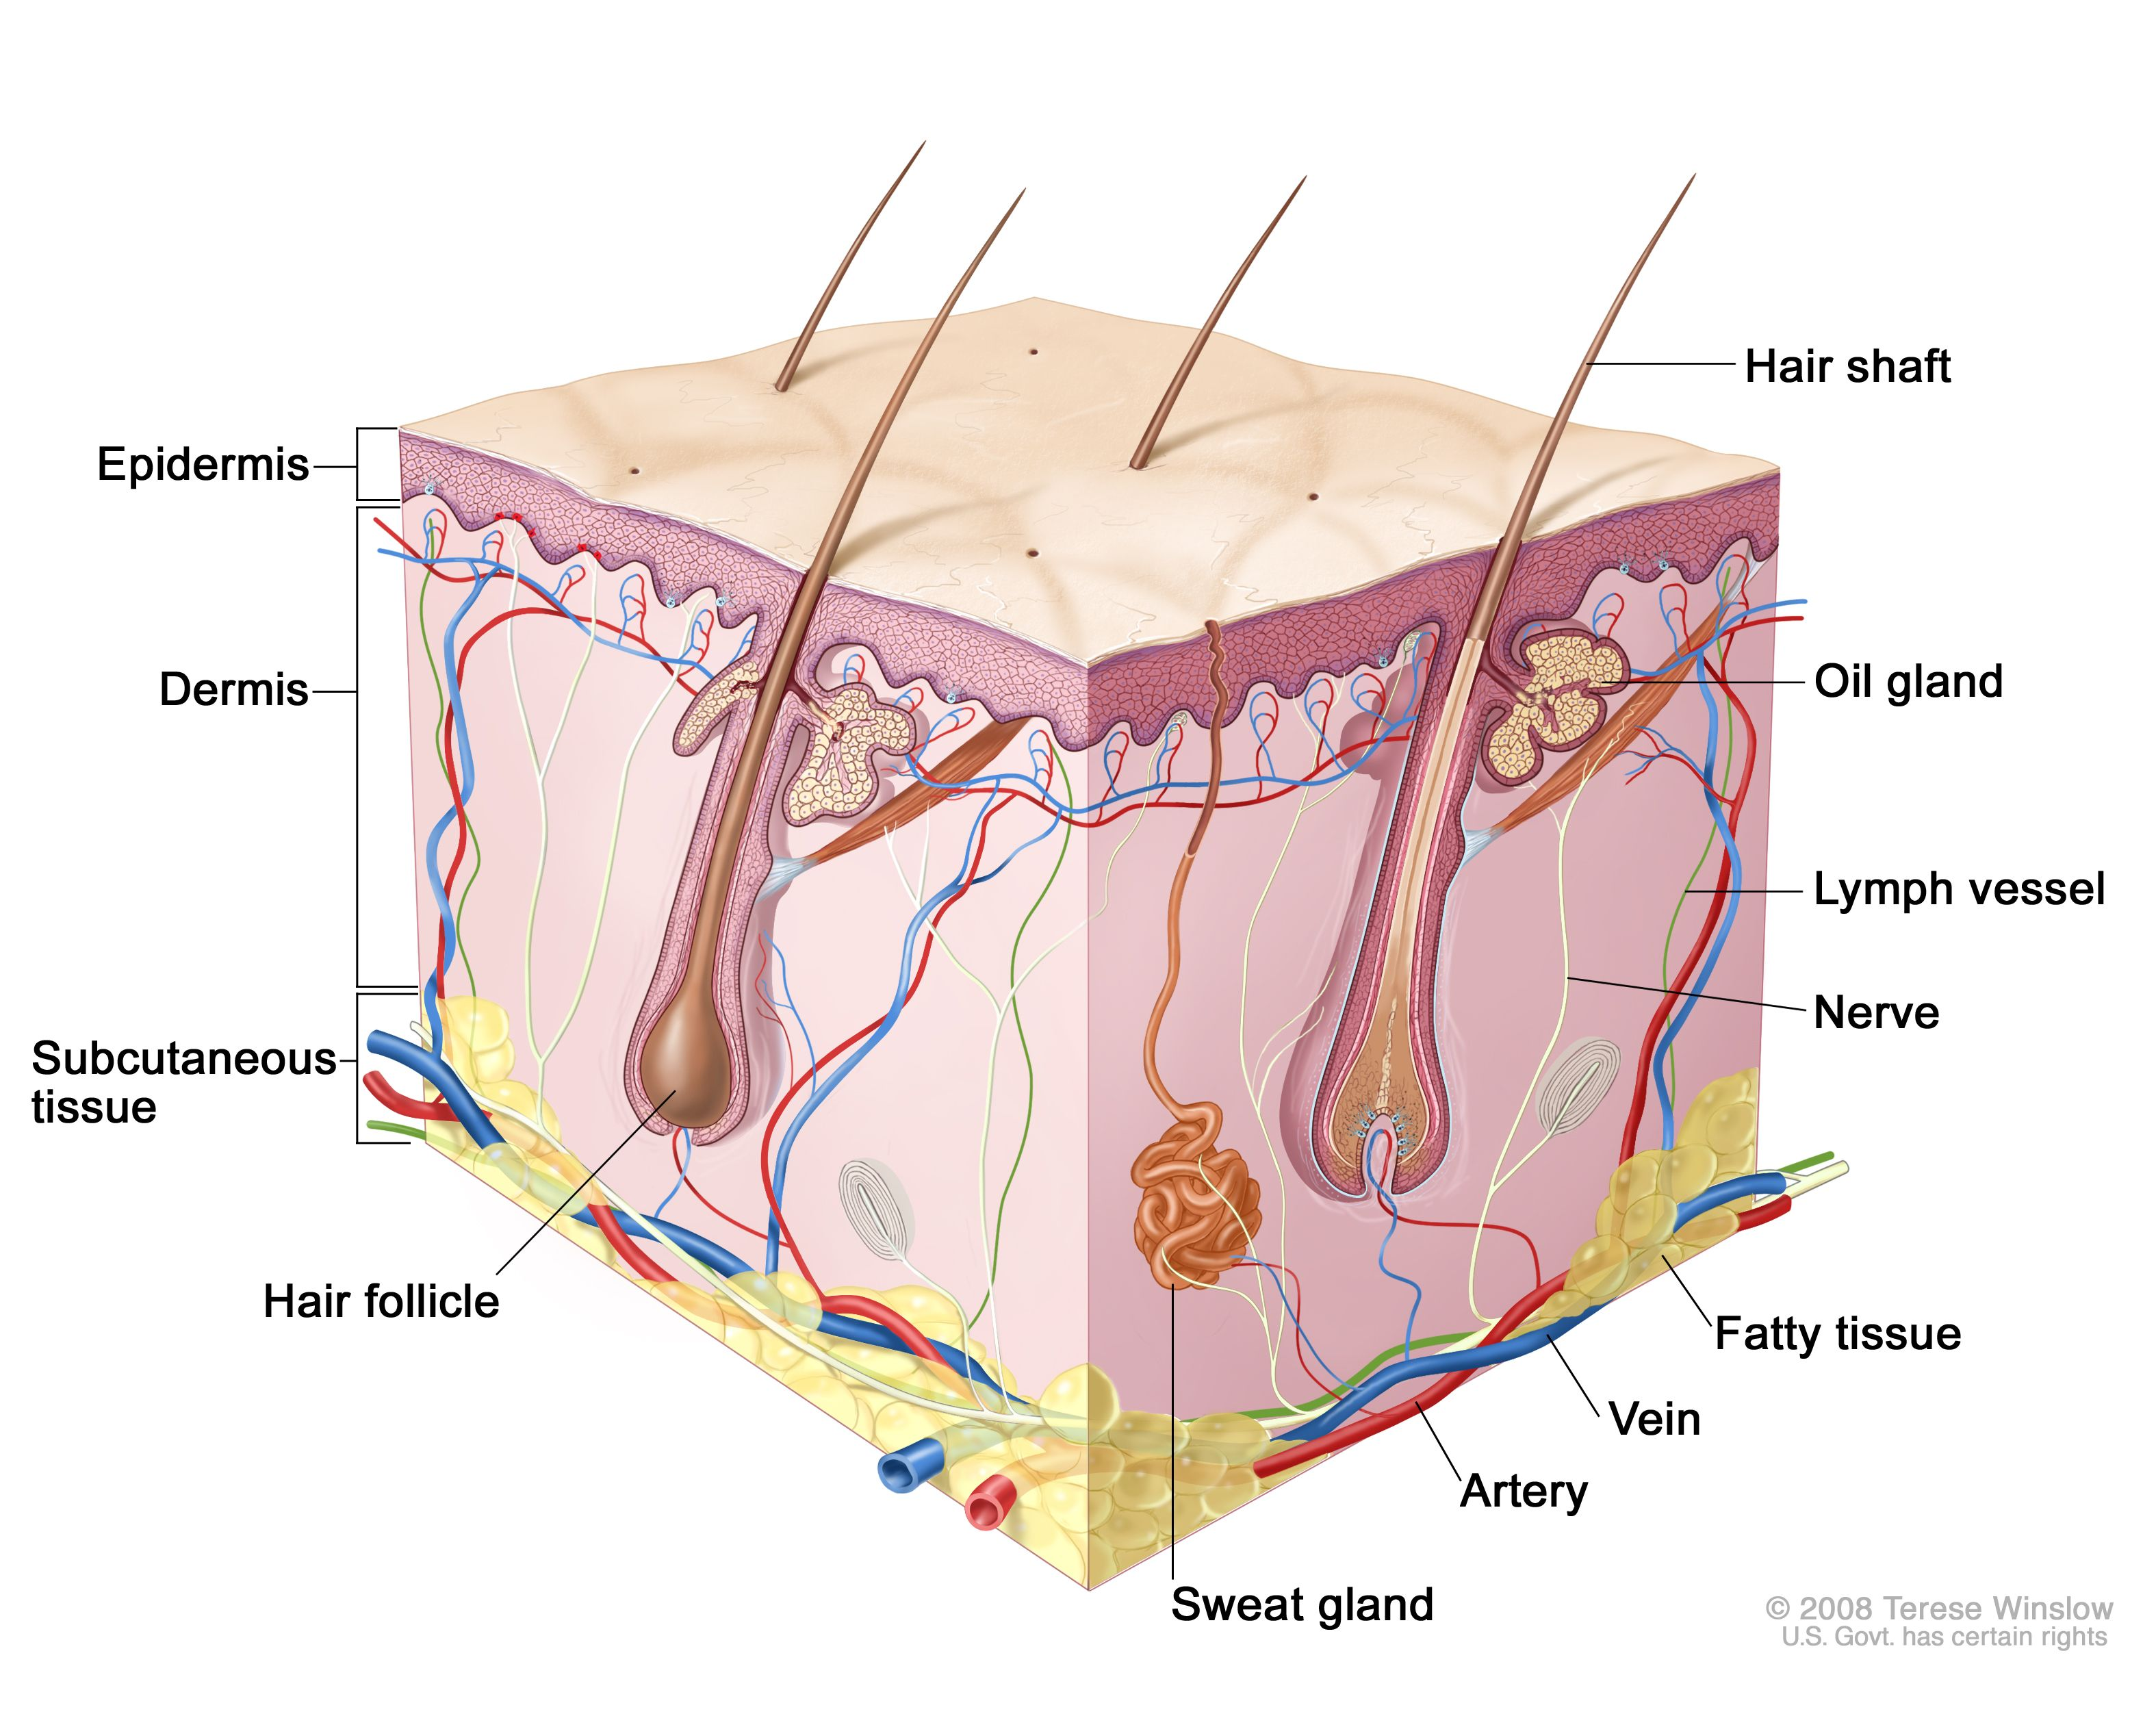 Skin Anatomy Drawing Shows Layers Of The Epidermis Dermis And